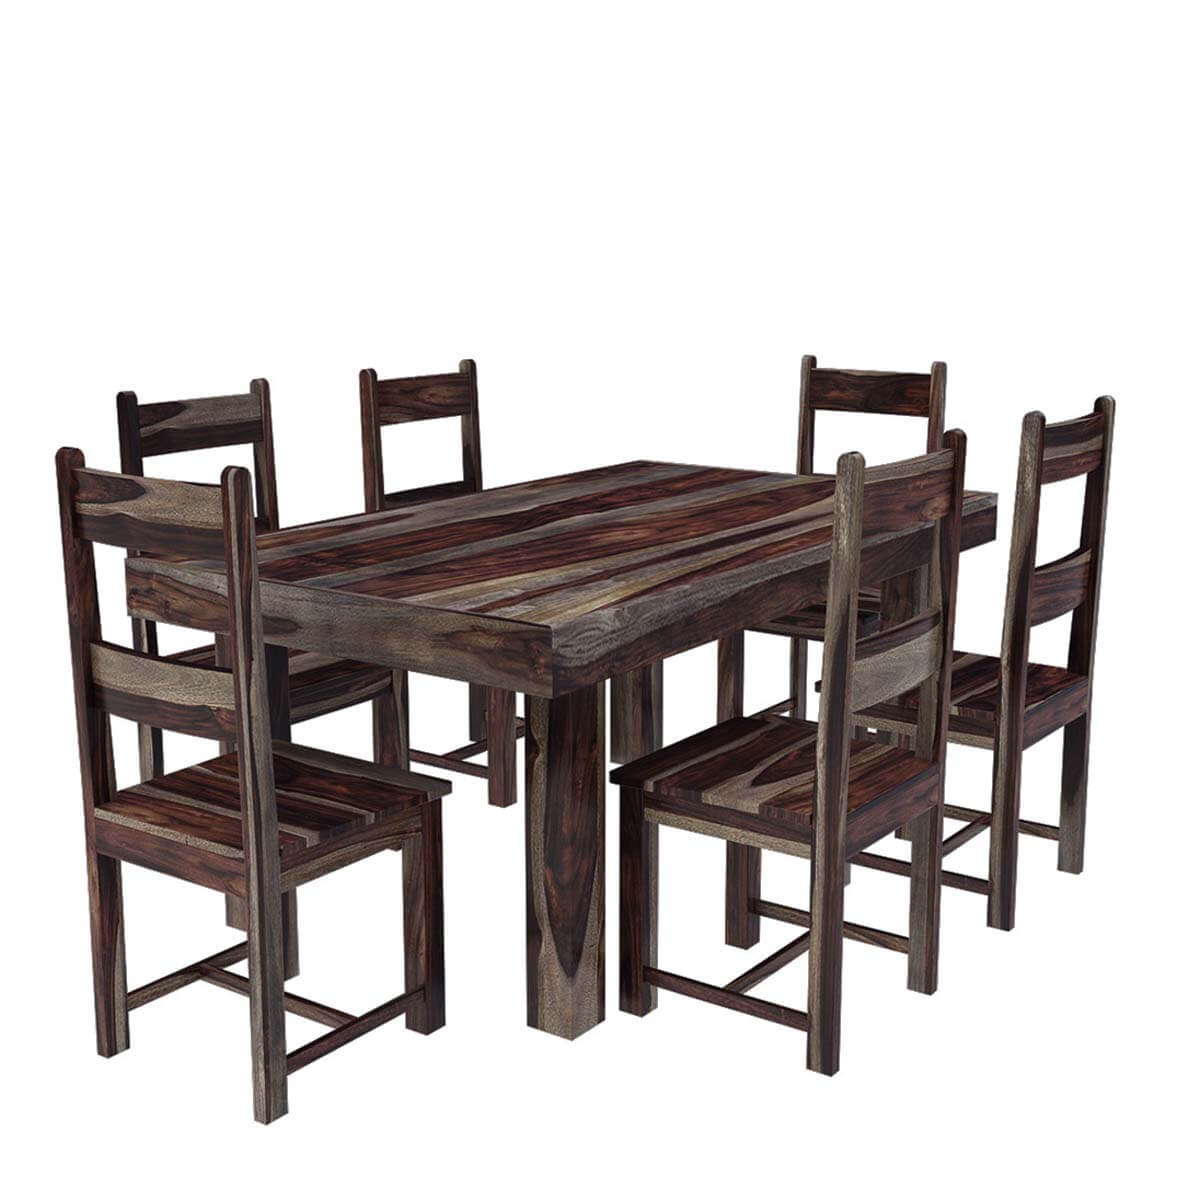 Frisco modern solid wood casual rustic dining room table for Rustic dining room sets